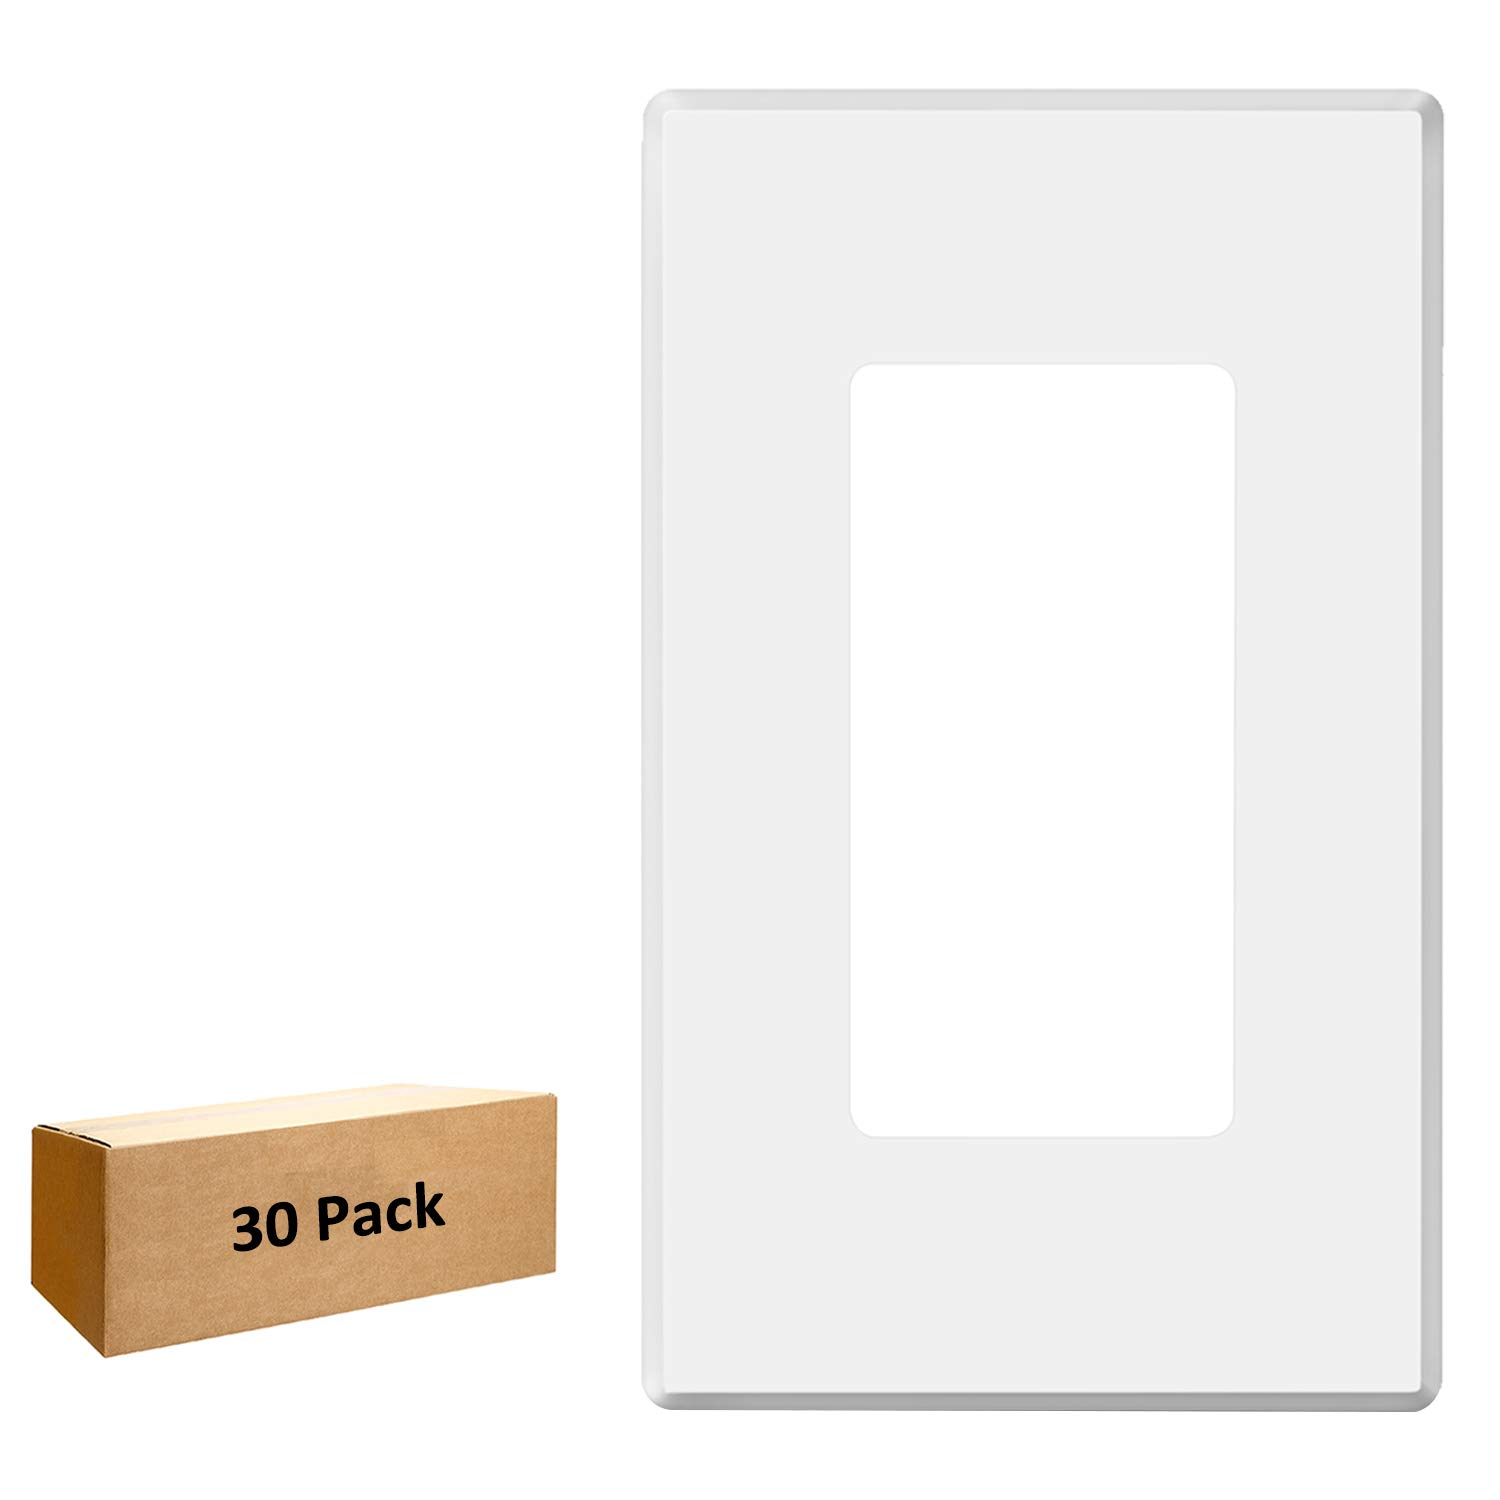 [30 Pack] BESTTEN Screwless Wall Plate, USWP2 Series, 1-Gang Light Switch Cover for Dimmer, Sensor, Timer, GFCI and Decorator Receptacle, Residential and Commercial Grade, UL Listed, White